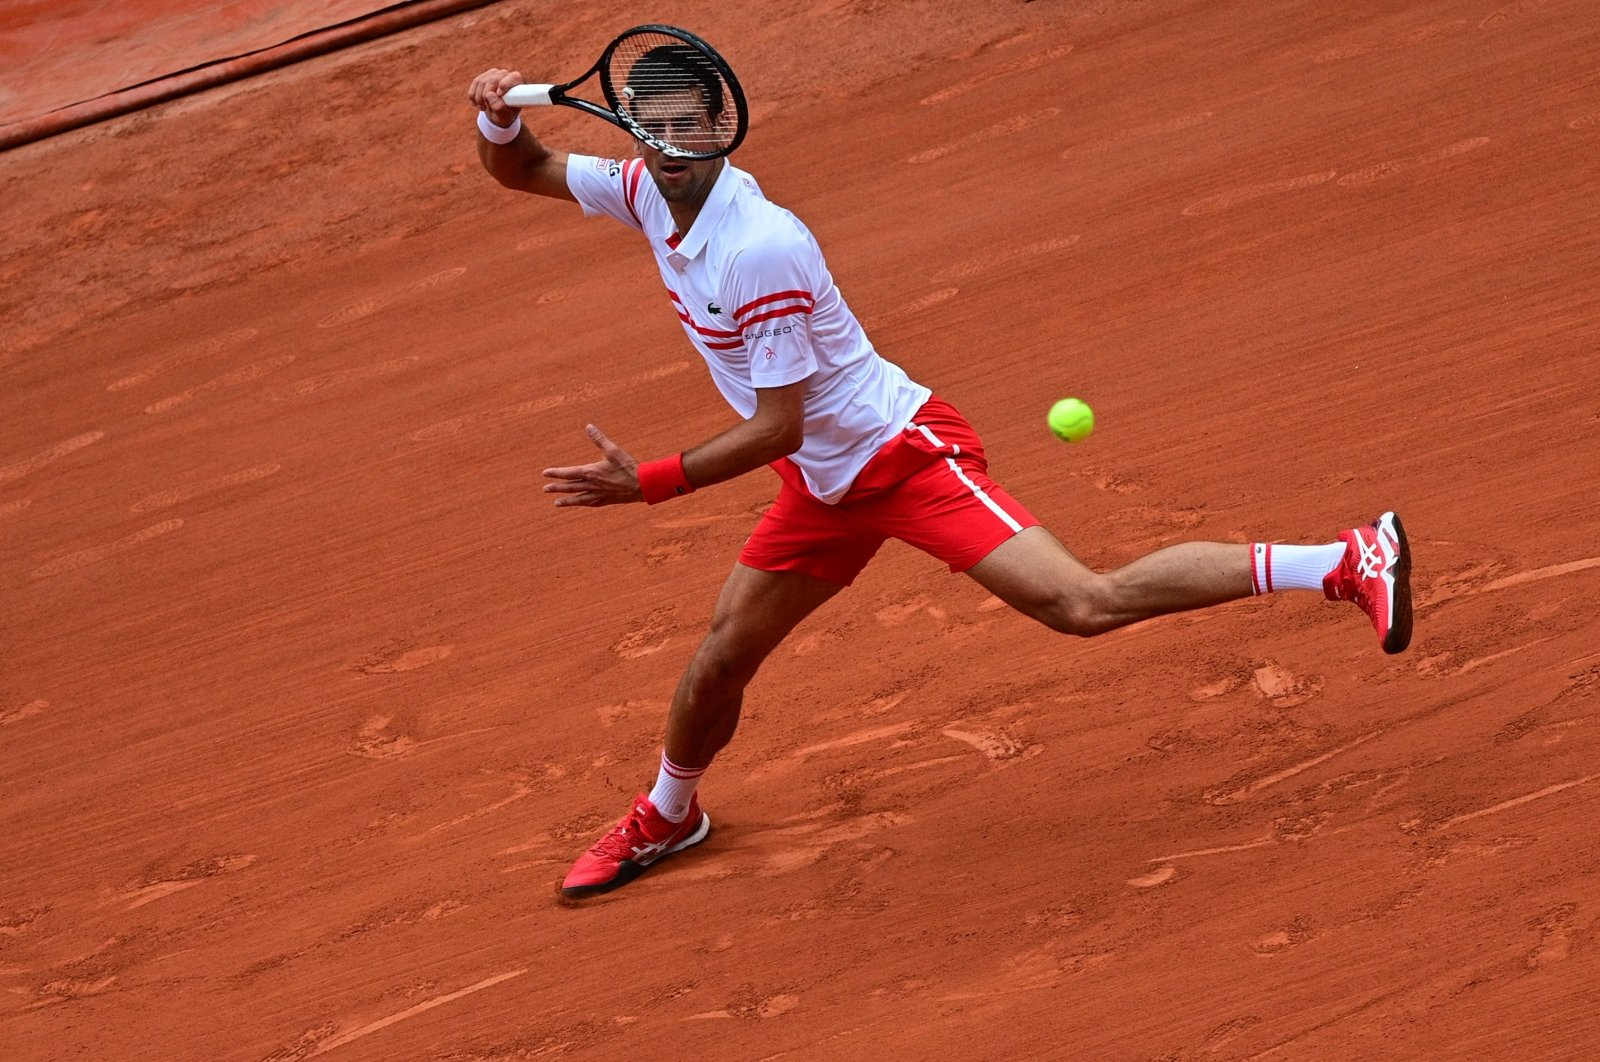 Serbia's Novak Djokovic returns the ball to Italy's Lorenzo Musetti during their men's singles fourth round tennis match on Day 9 of The Roland Garros 2021 French Open tennis tournament in Paris, France, June 7, 2021. (AFP Photo)